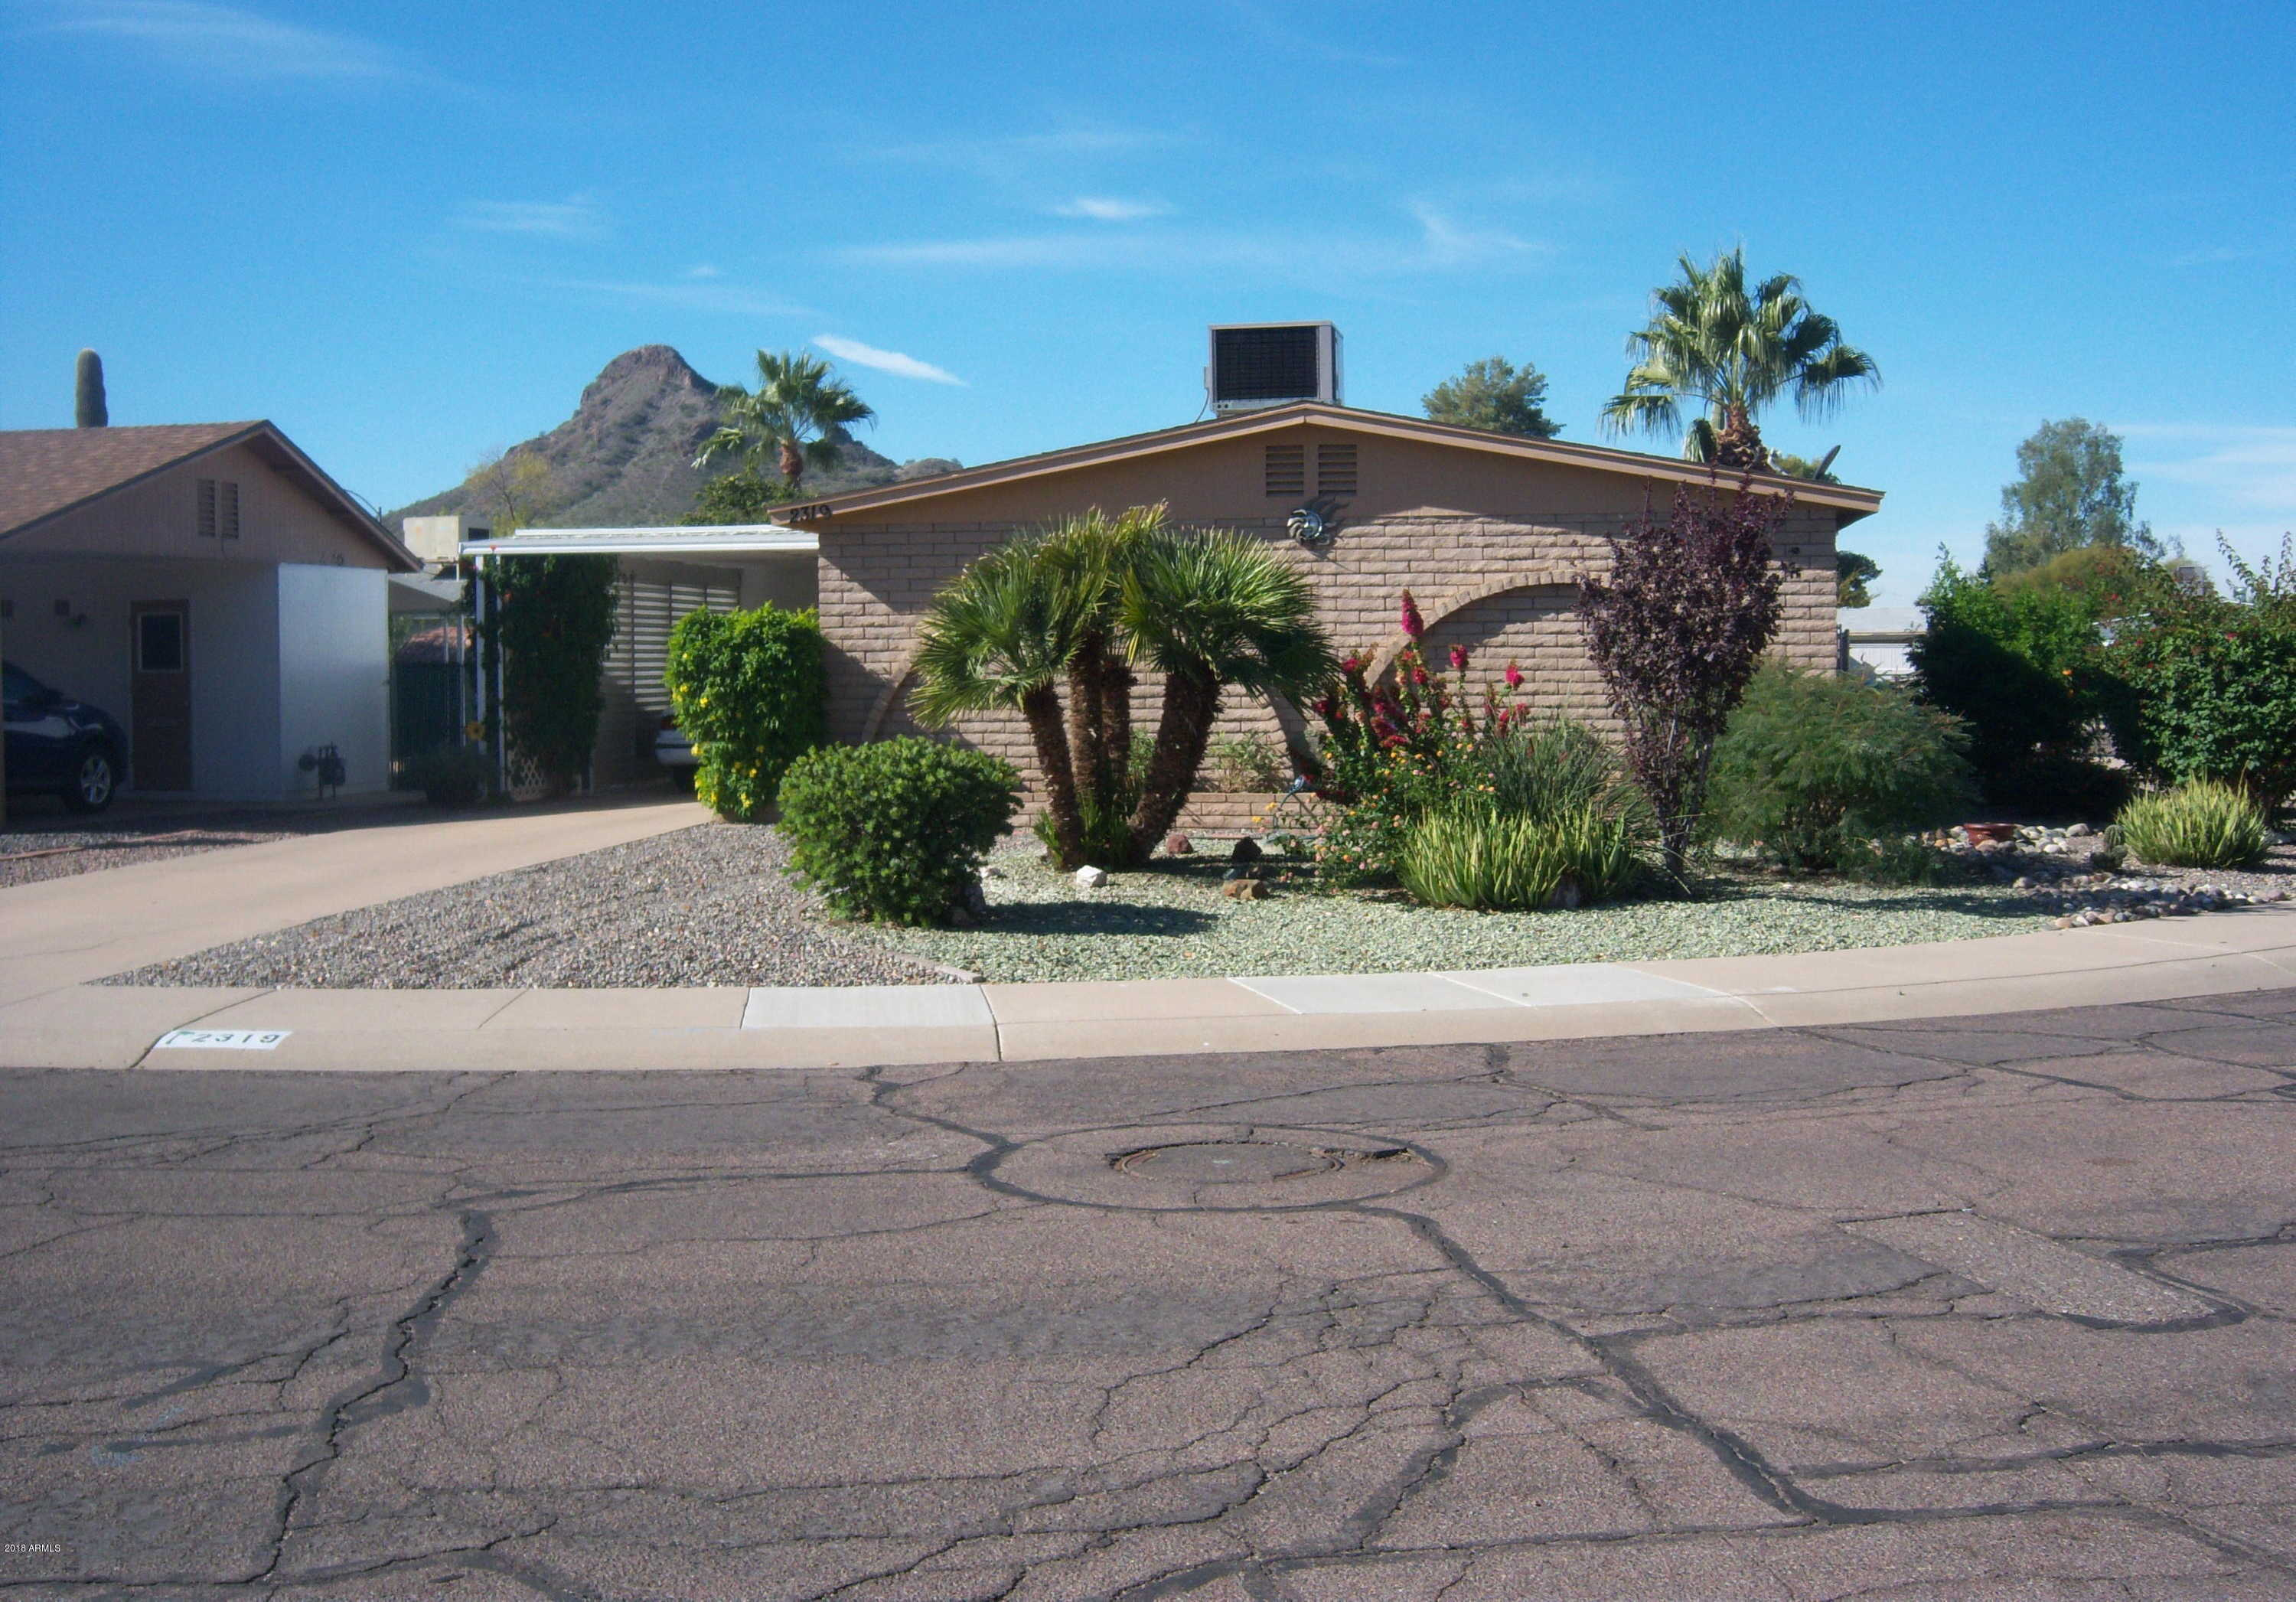 $200,000 - 2Br/2Ba - Home for Sale in Northtown 3a, Phoenix